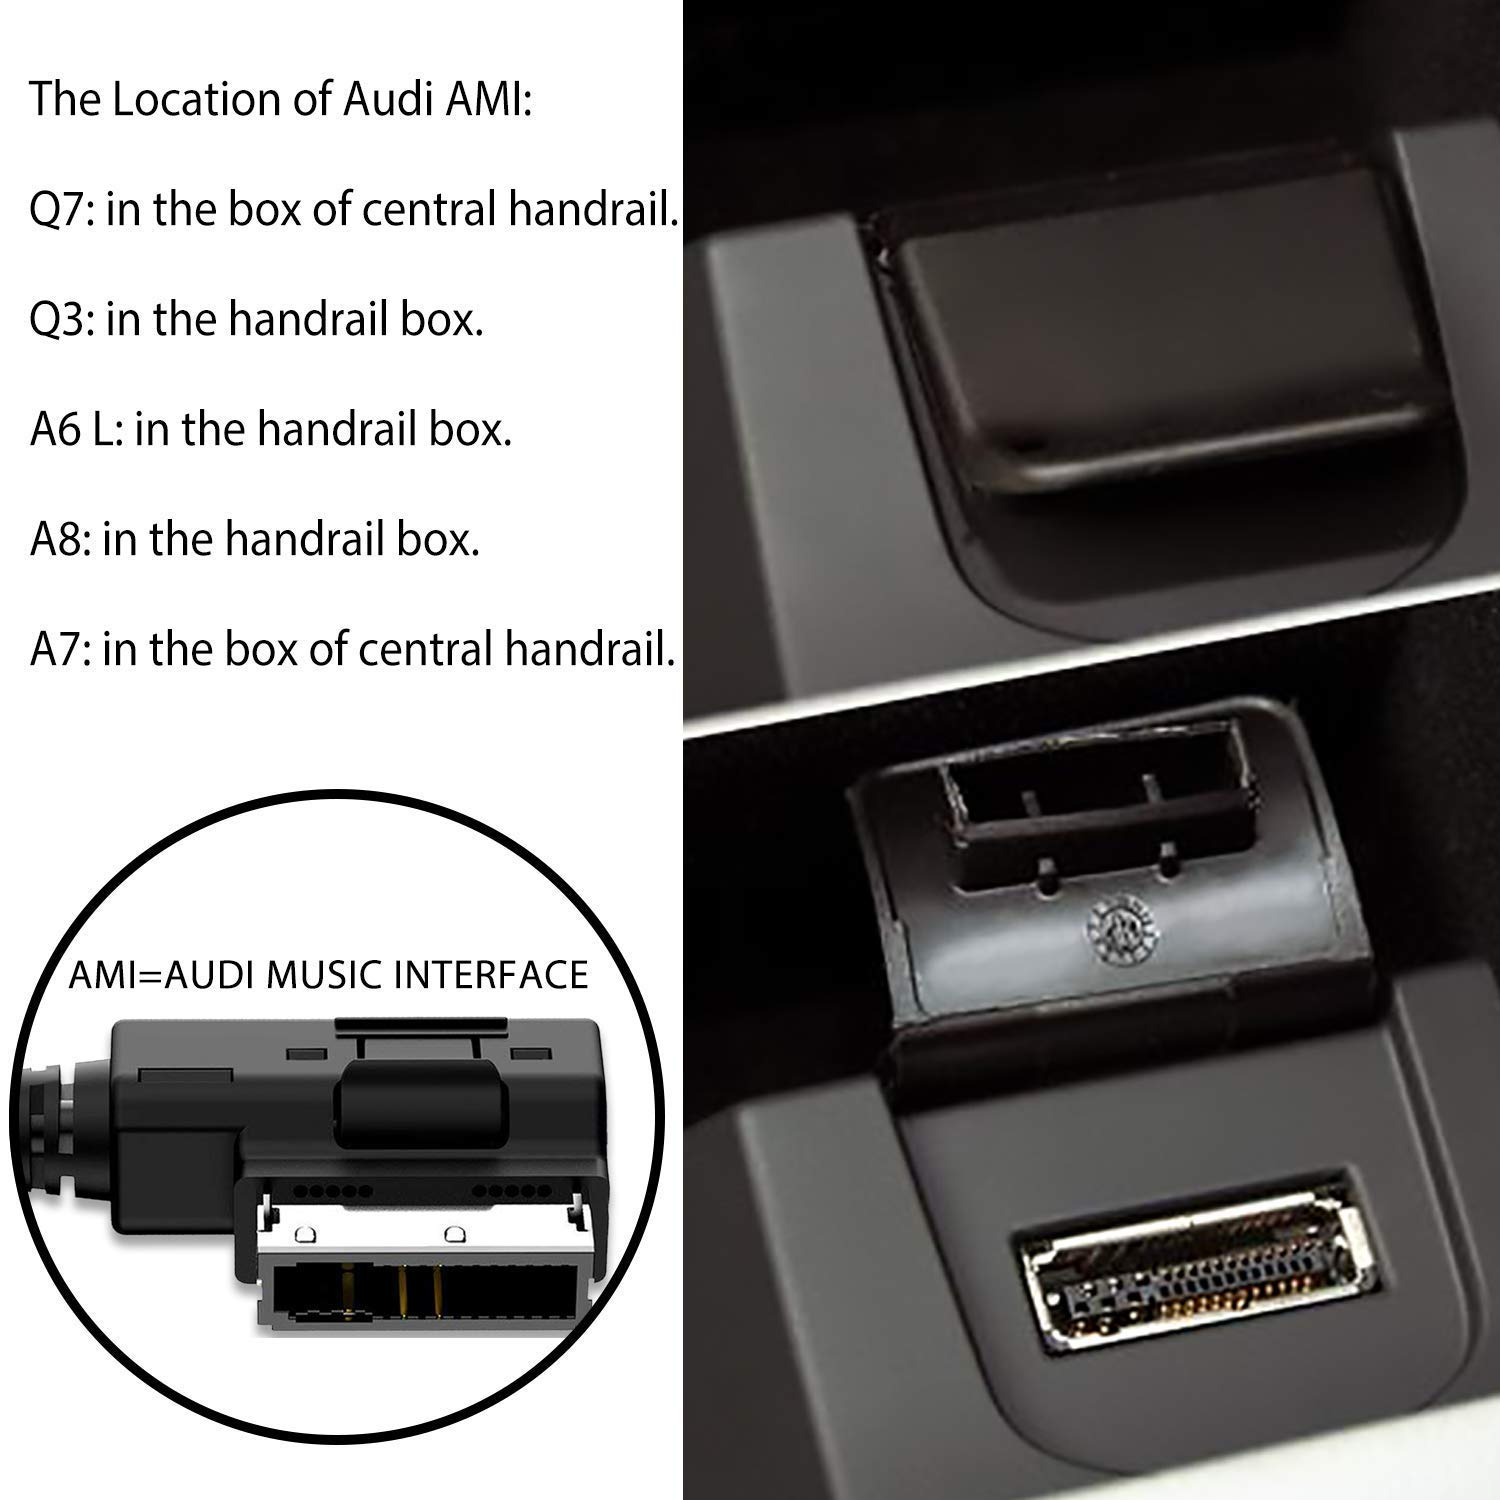 Charger Only VAFCAM AMI Music Interface Charger AUX Cable for Audi VW Jetta Audio Interface 1M Audio for iPhone Xs//Max//X // 8//8 Plus // 7//7 Plus // 6 with iOS System VACFAM